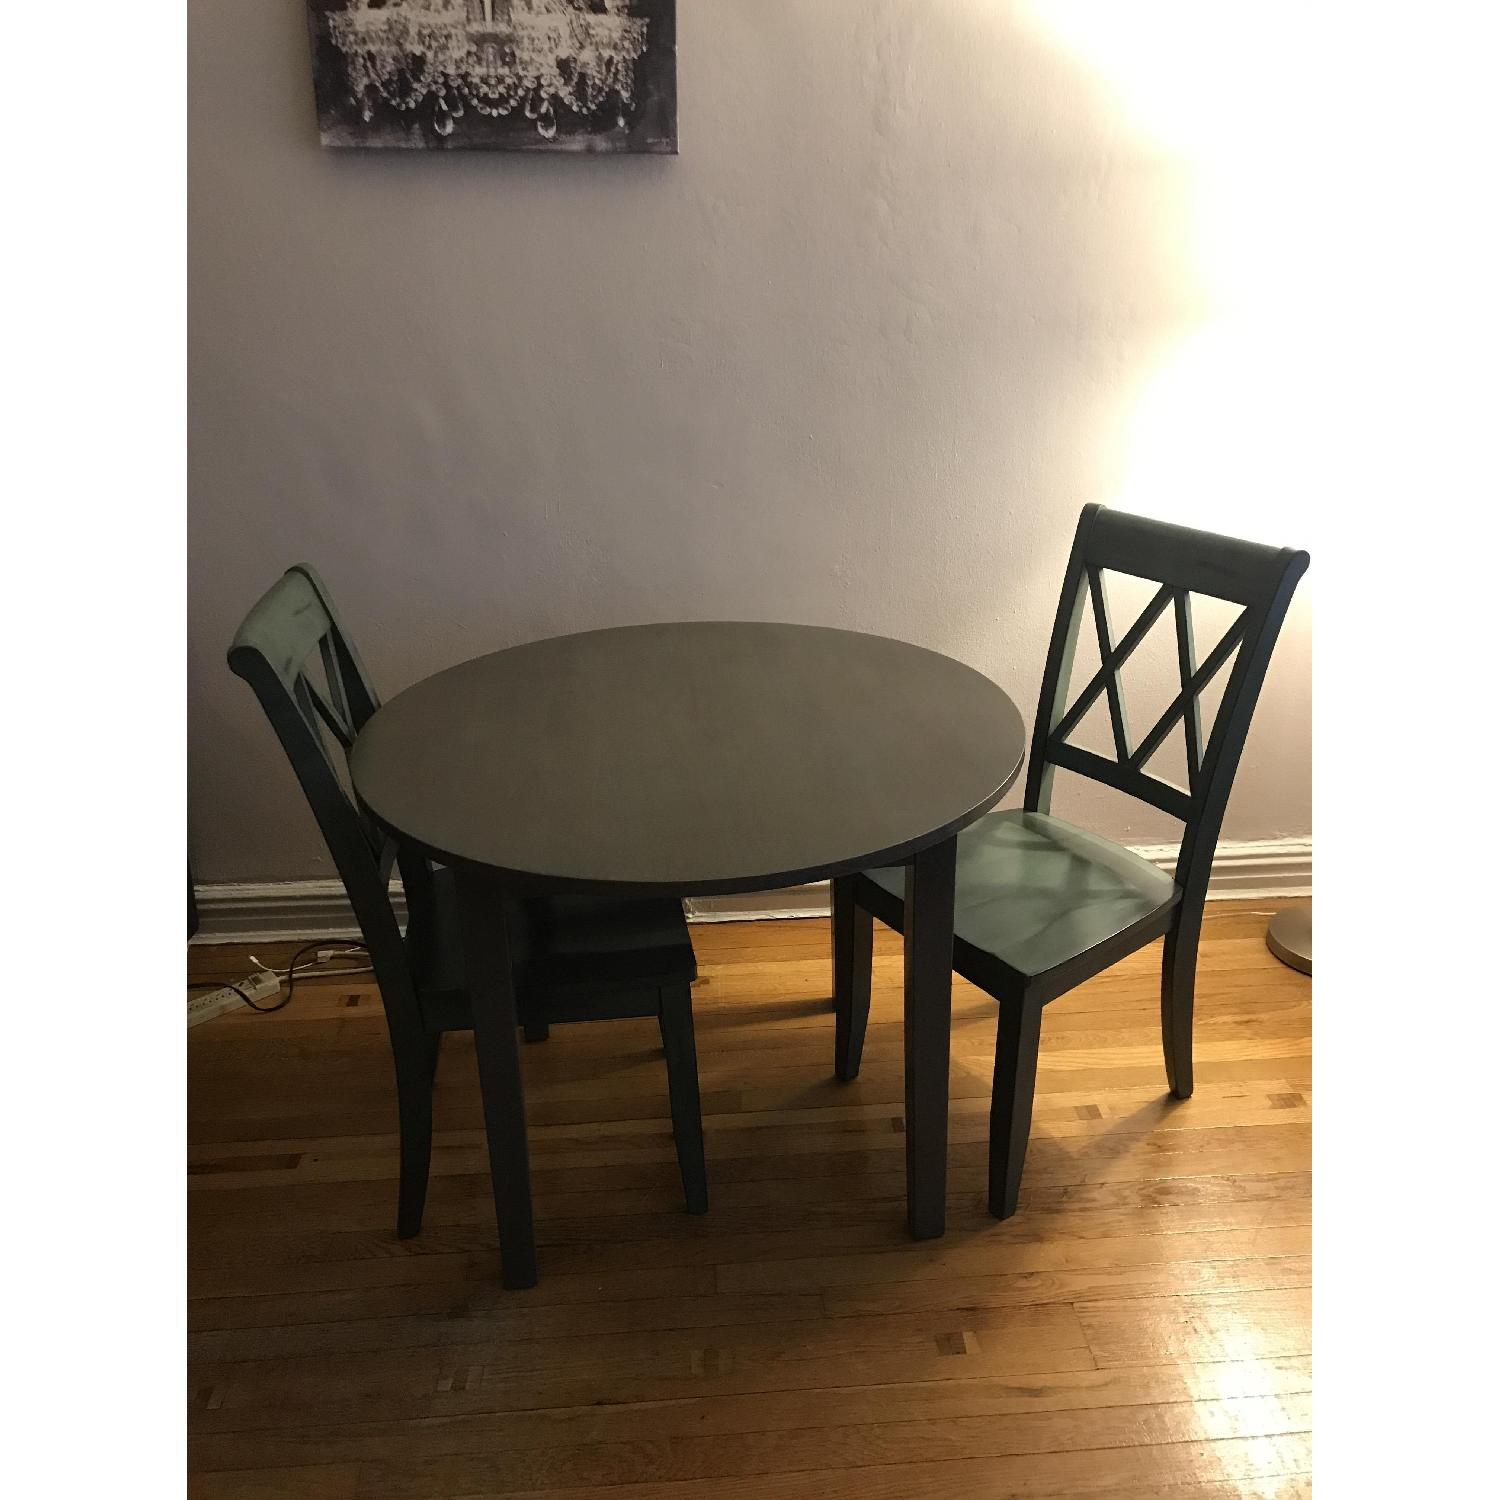 Safavieh Holly French Dining Table w/ 2 Chairs - image-2